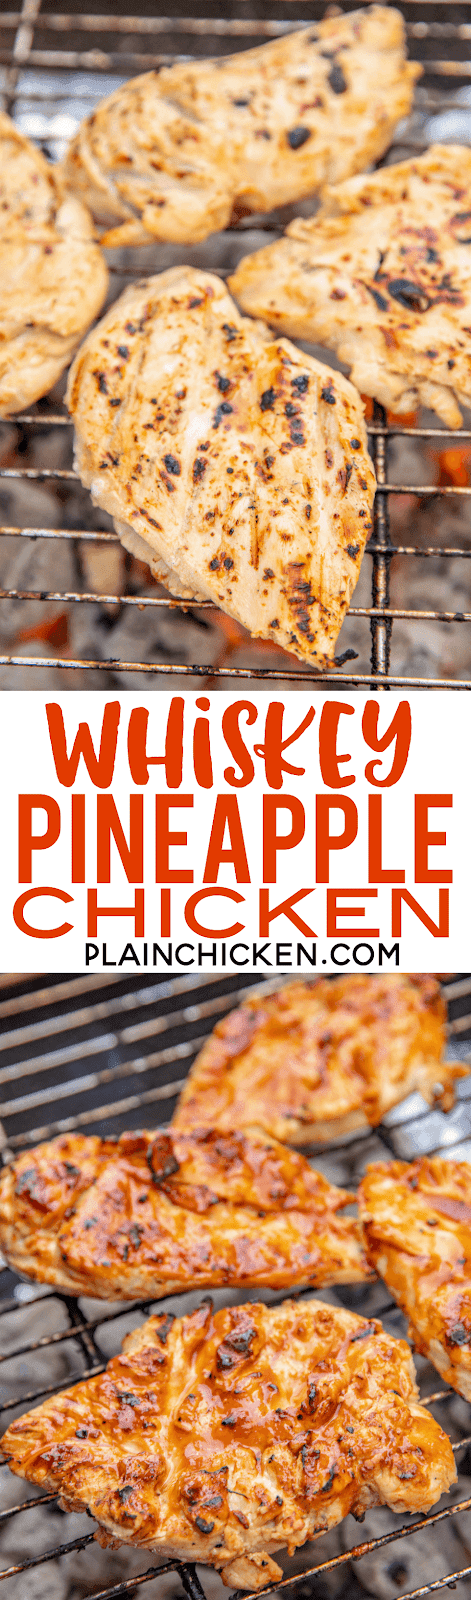 Whiskey Pineapple Chicken